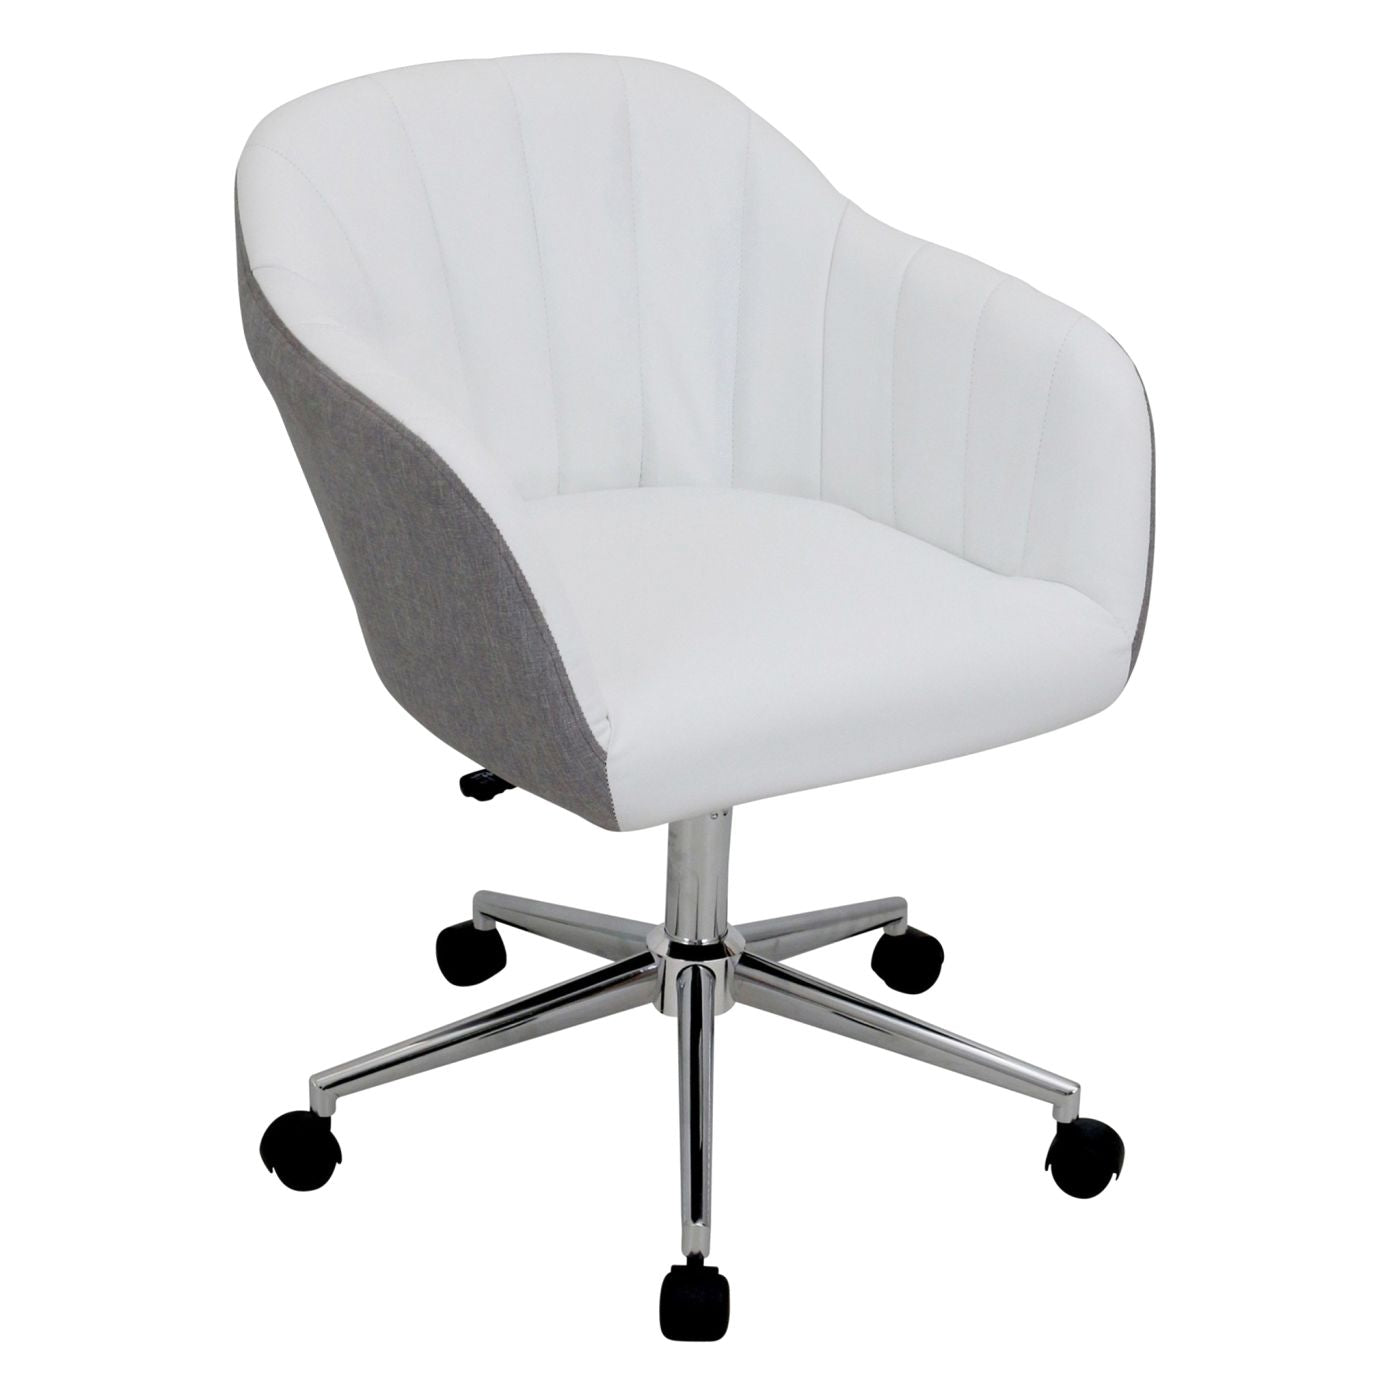 office w grey may stool linen chair ottoman back homcom recliner set offer holiday